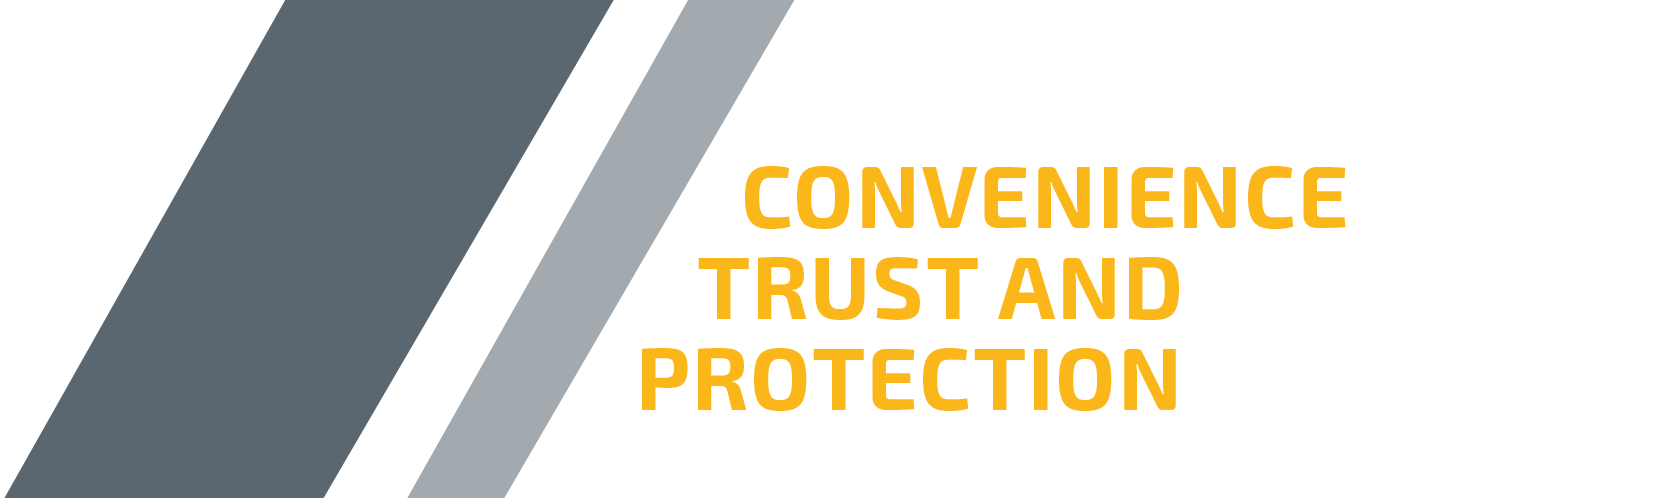 "image says ""Convenience trust and protection"""